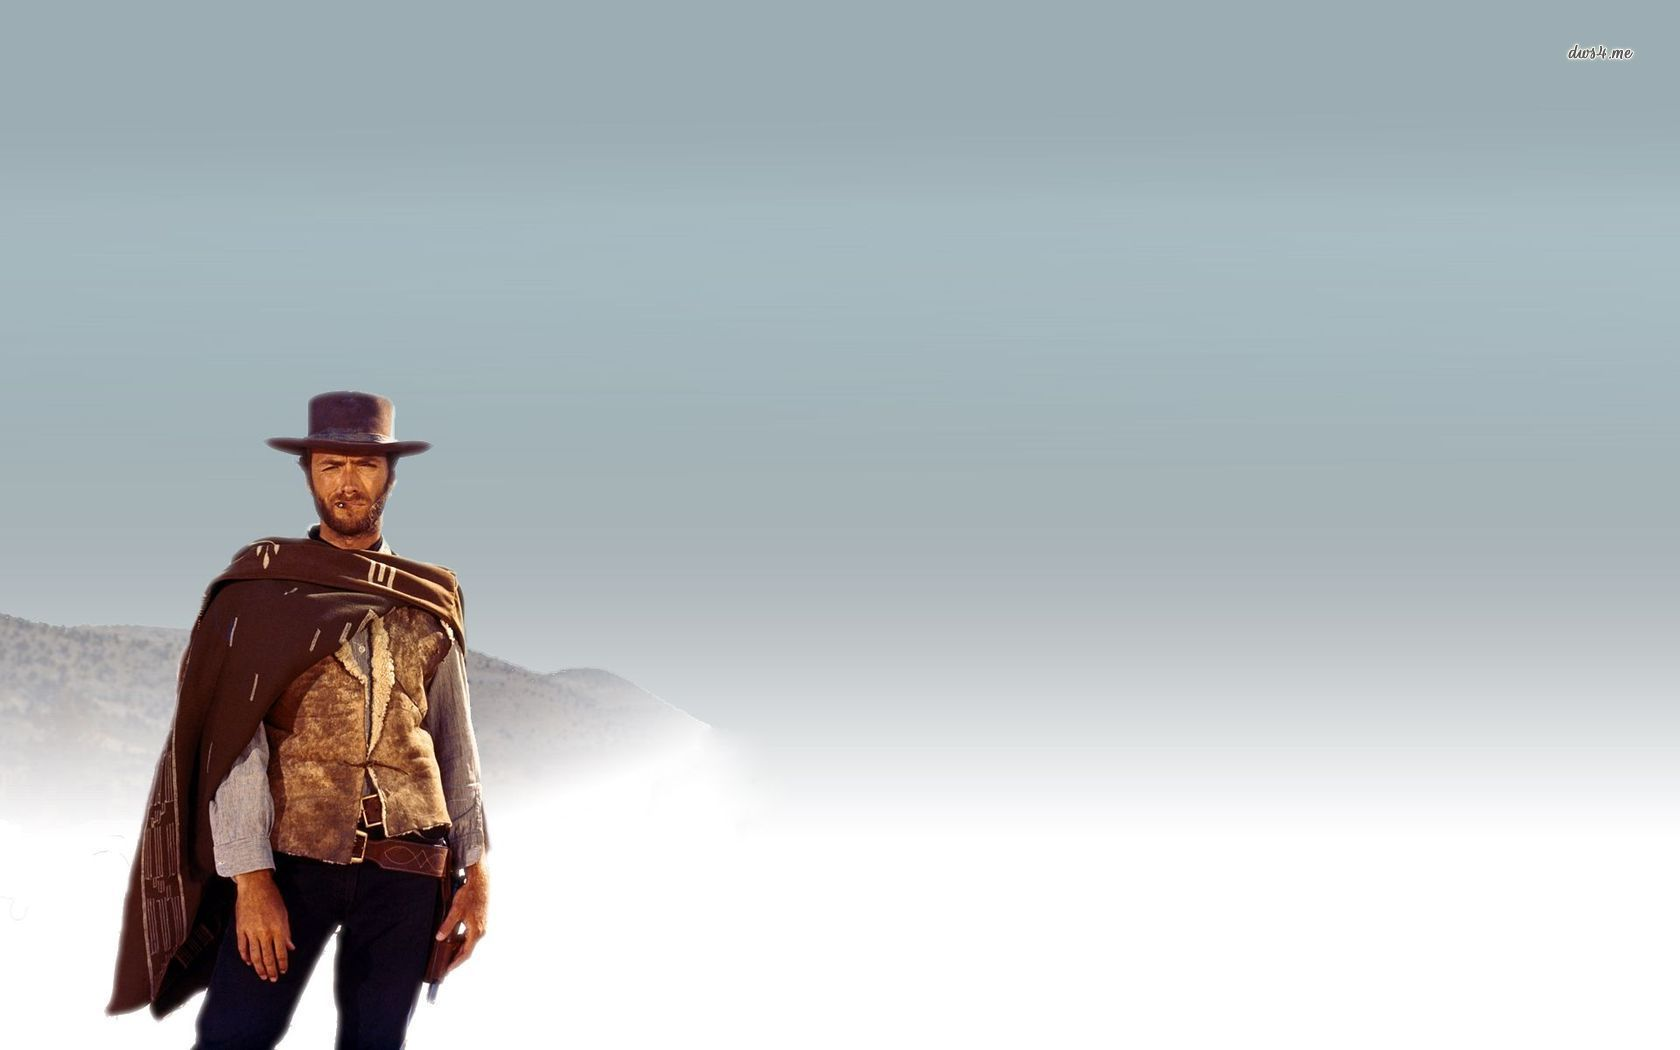 1680x1050 - Clint Eastwood Wallpapers 10